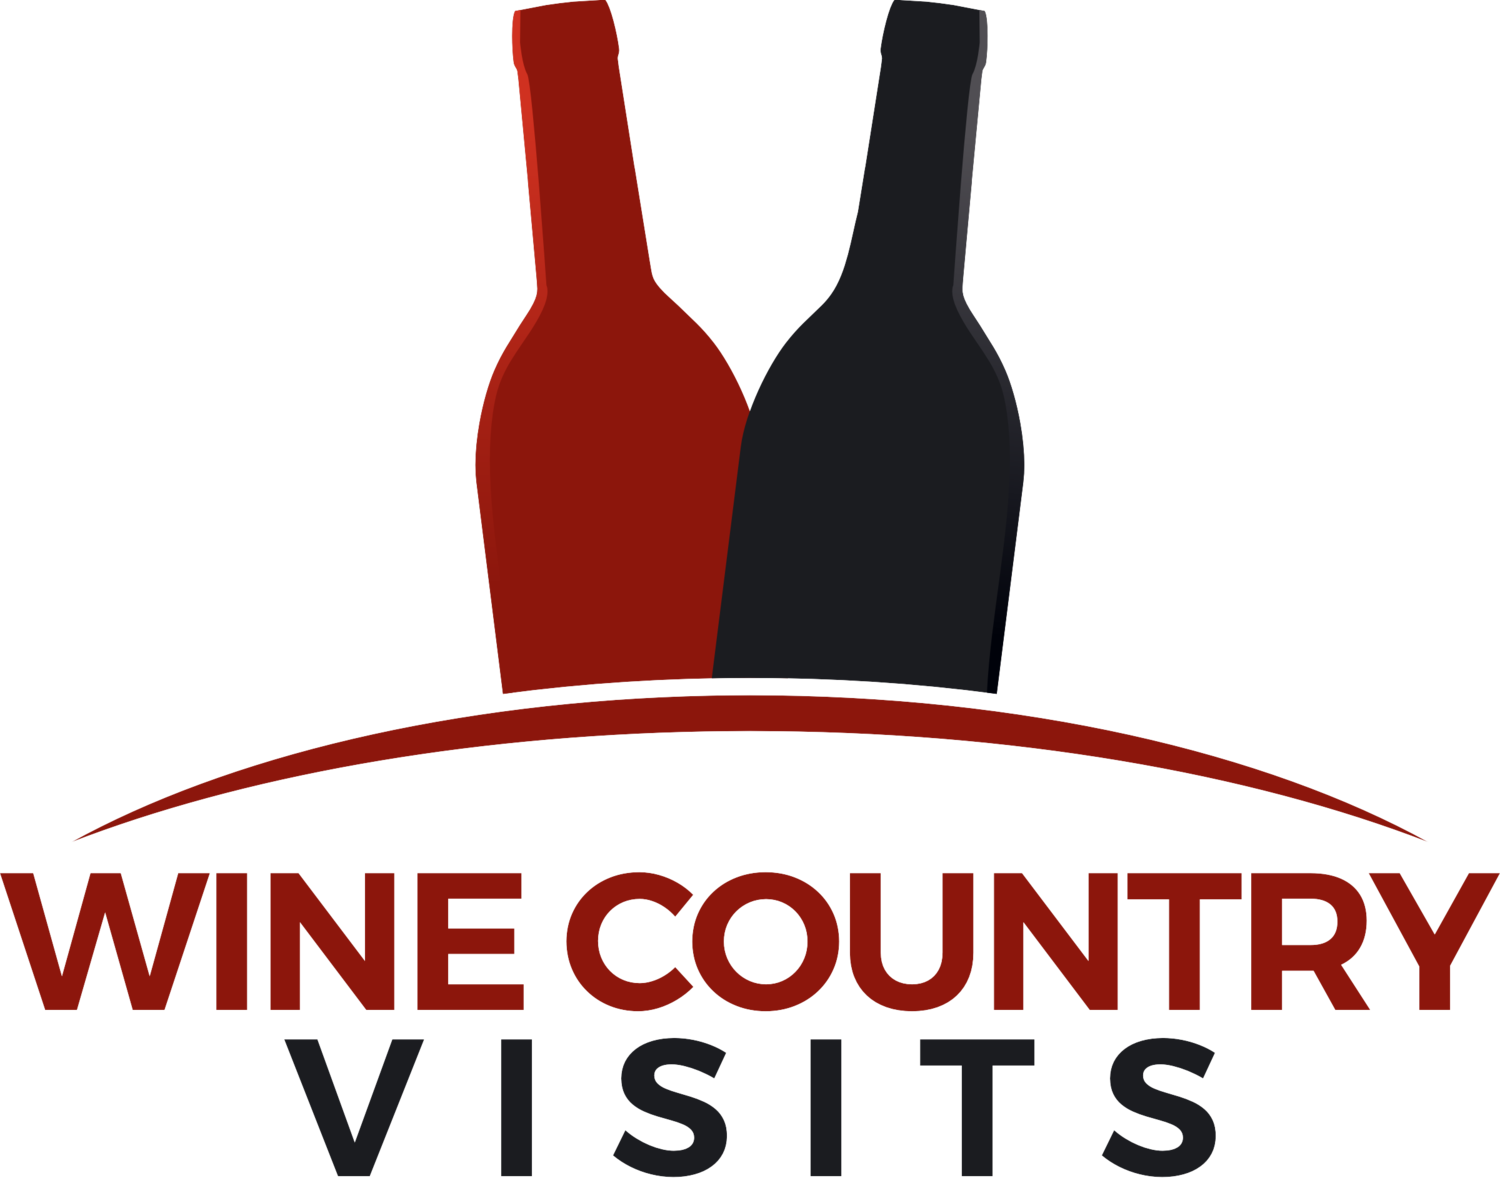 Wine Country Visits